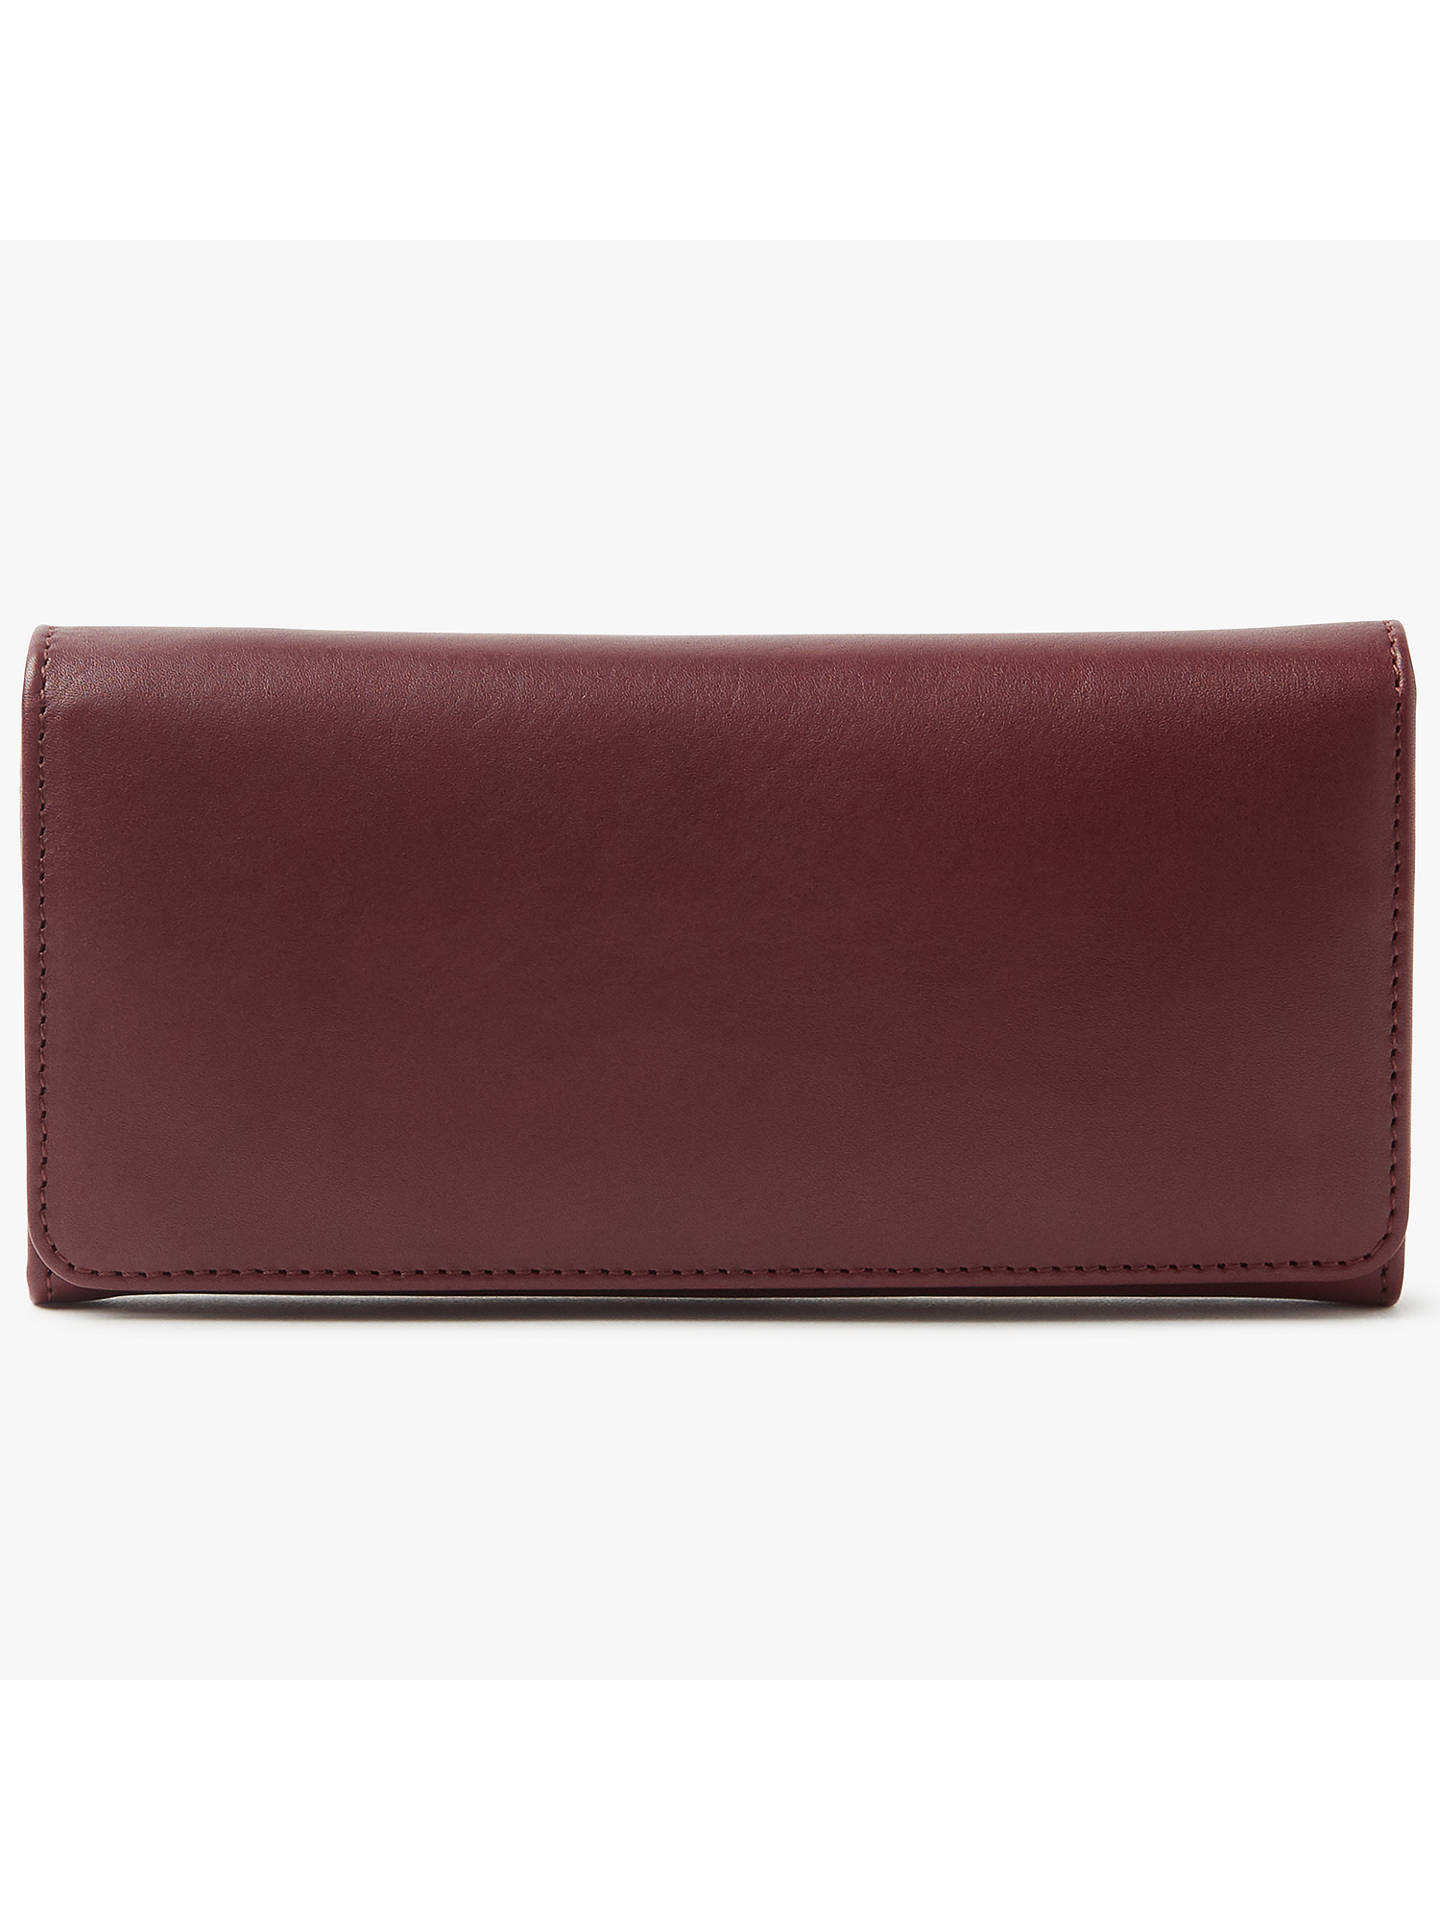 BuyJohn Lewis Lizzie Leather Slim Continental Purse, Purple Online at johnlewis.com